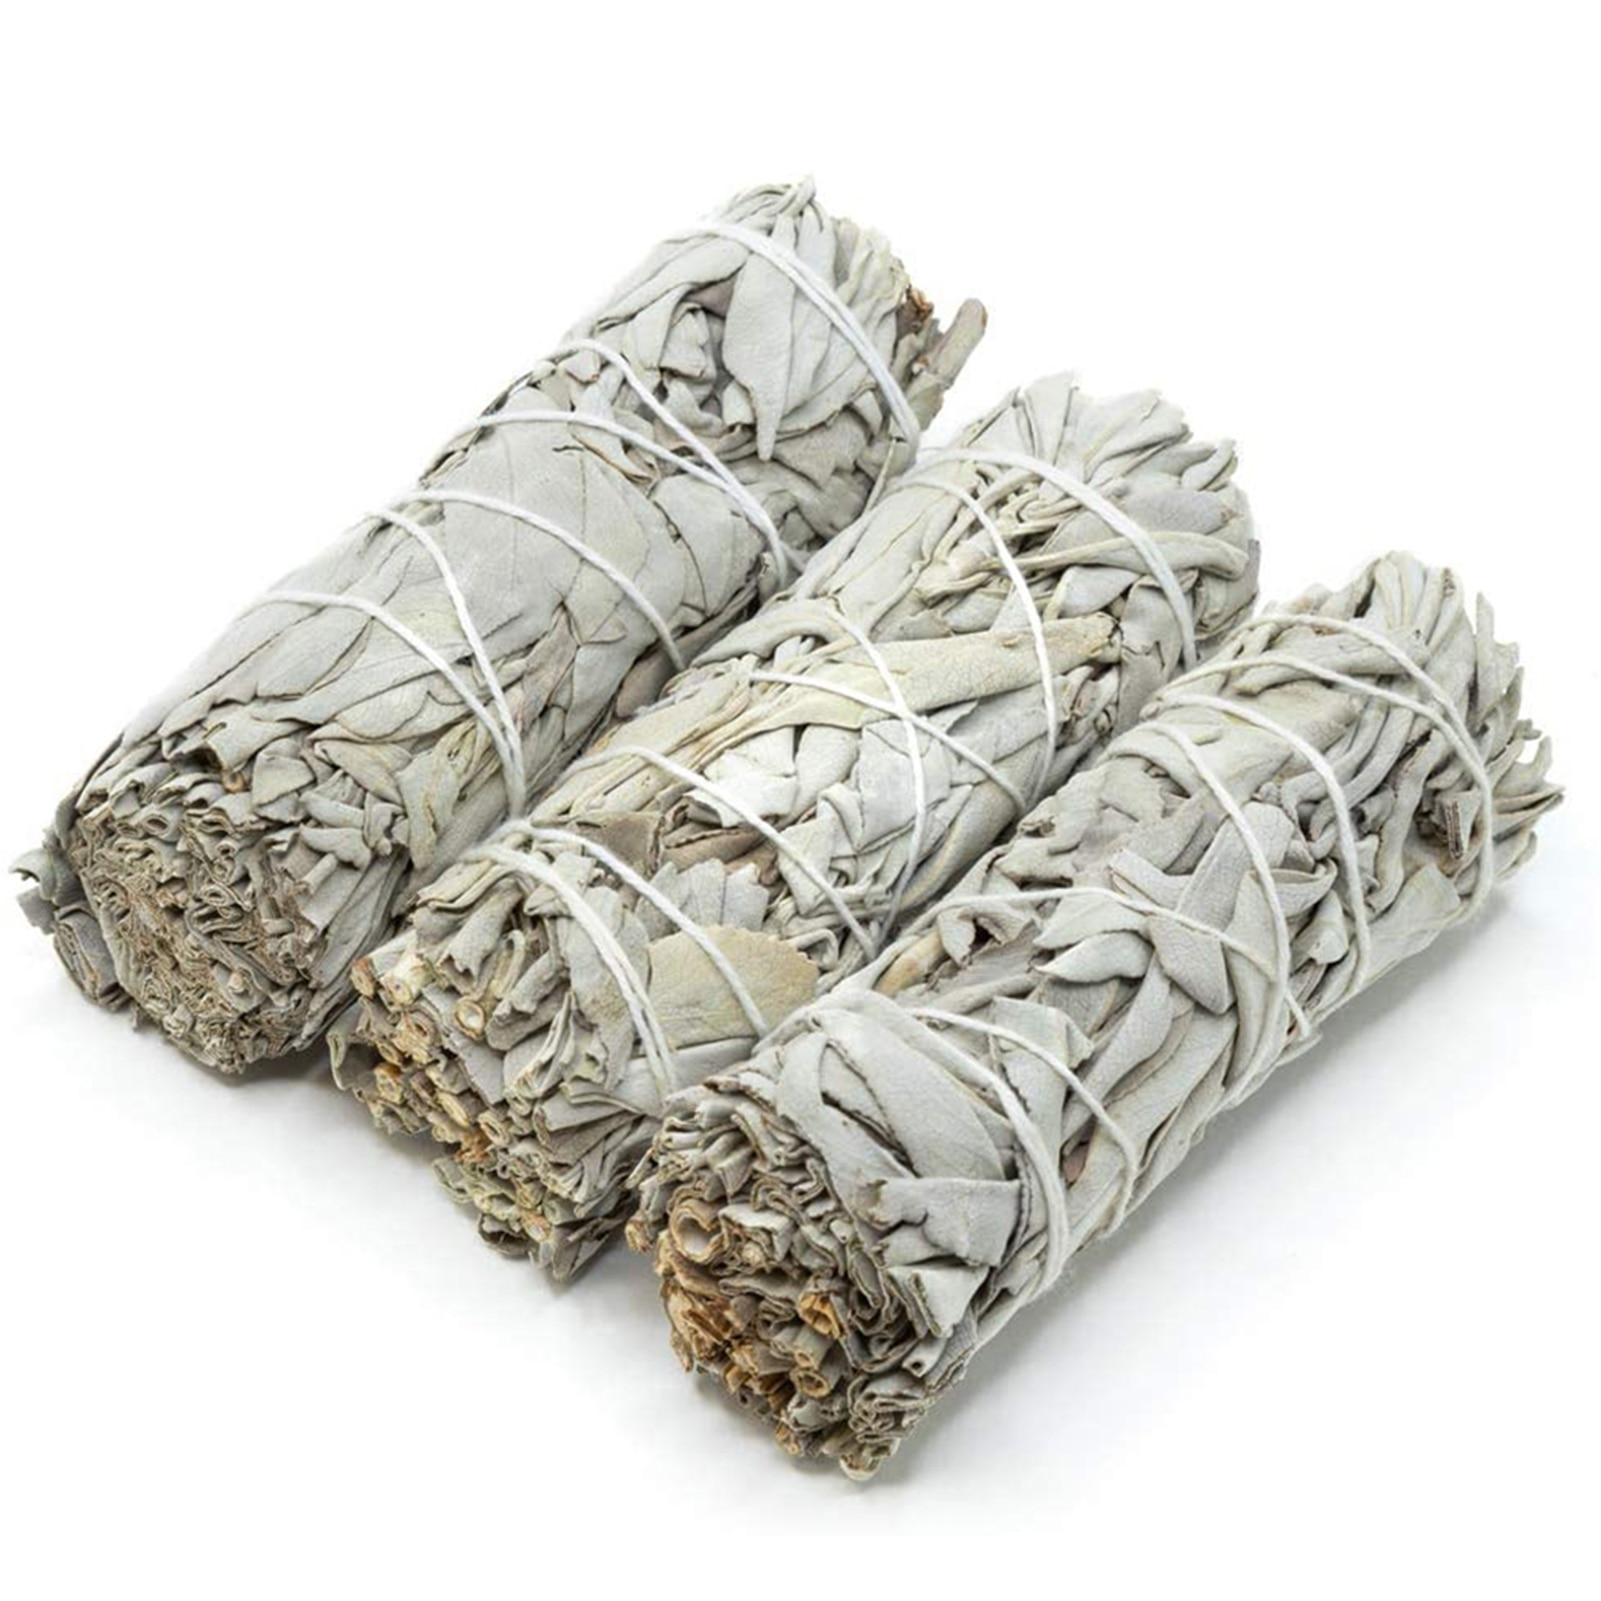 White Sage Bundles Sage Smudge Sticks For Home Smoking Cleansing Purification And Fragrance Healing